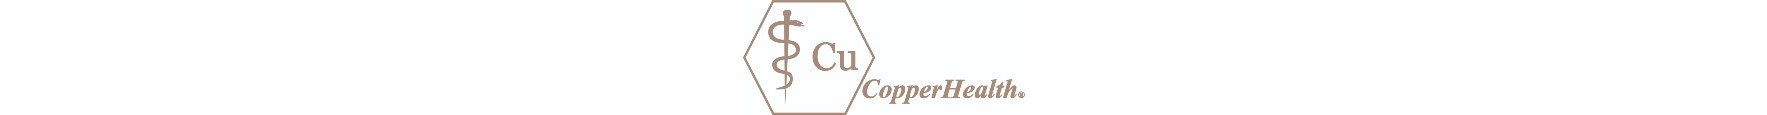 Latest Information for copper health